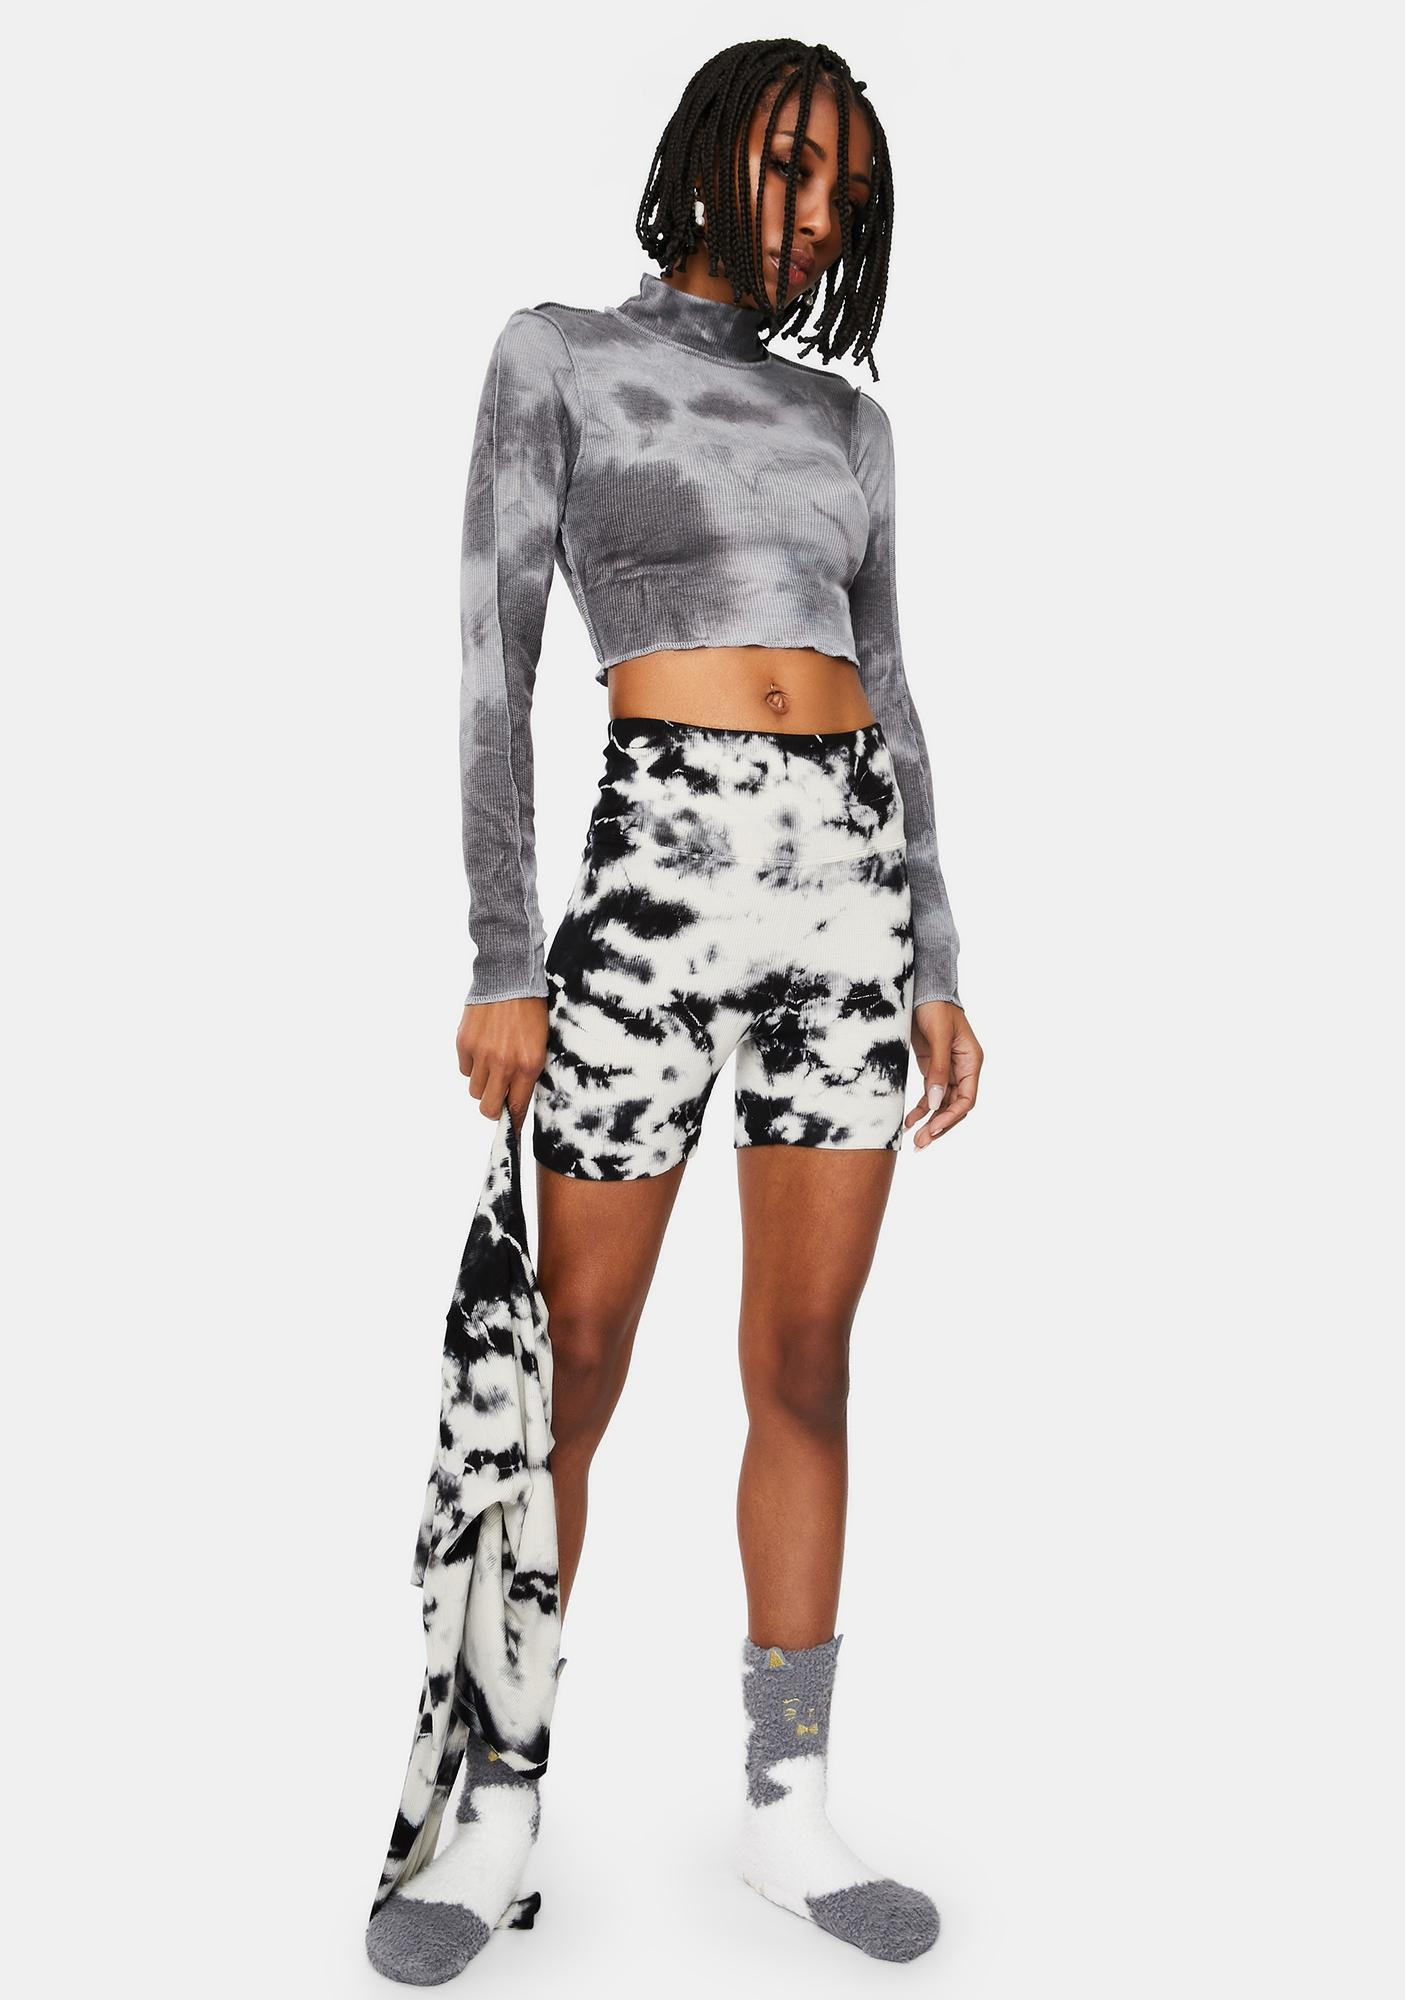 Grunge Anthem Tie Dye Crop Top